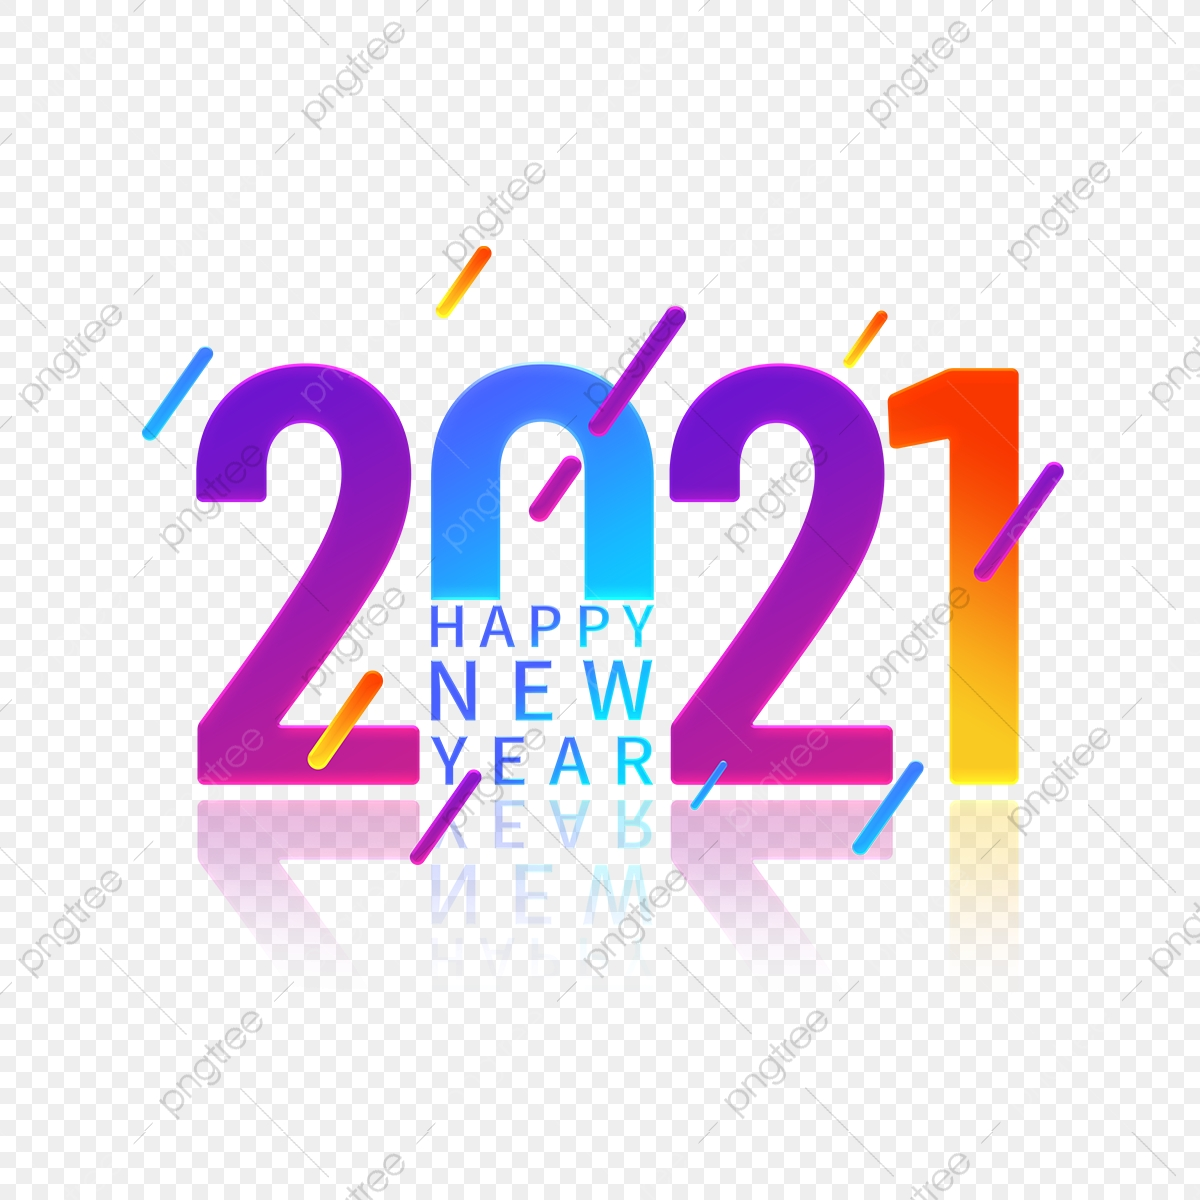 happy new year font png images vector and psd files free download on pngtree https pngtree com freepng colorful gradient 2021 happy new year font design element 5487471 html